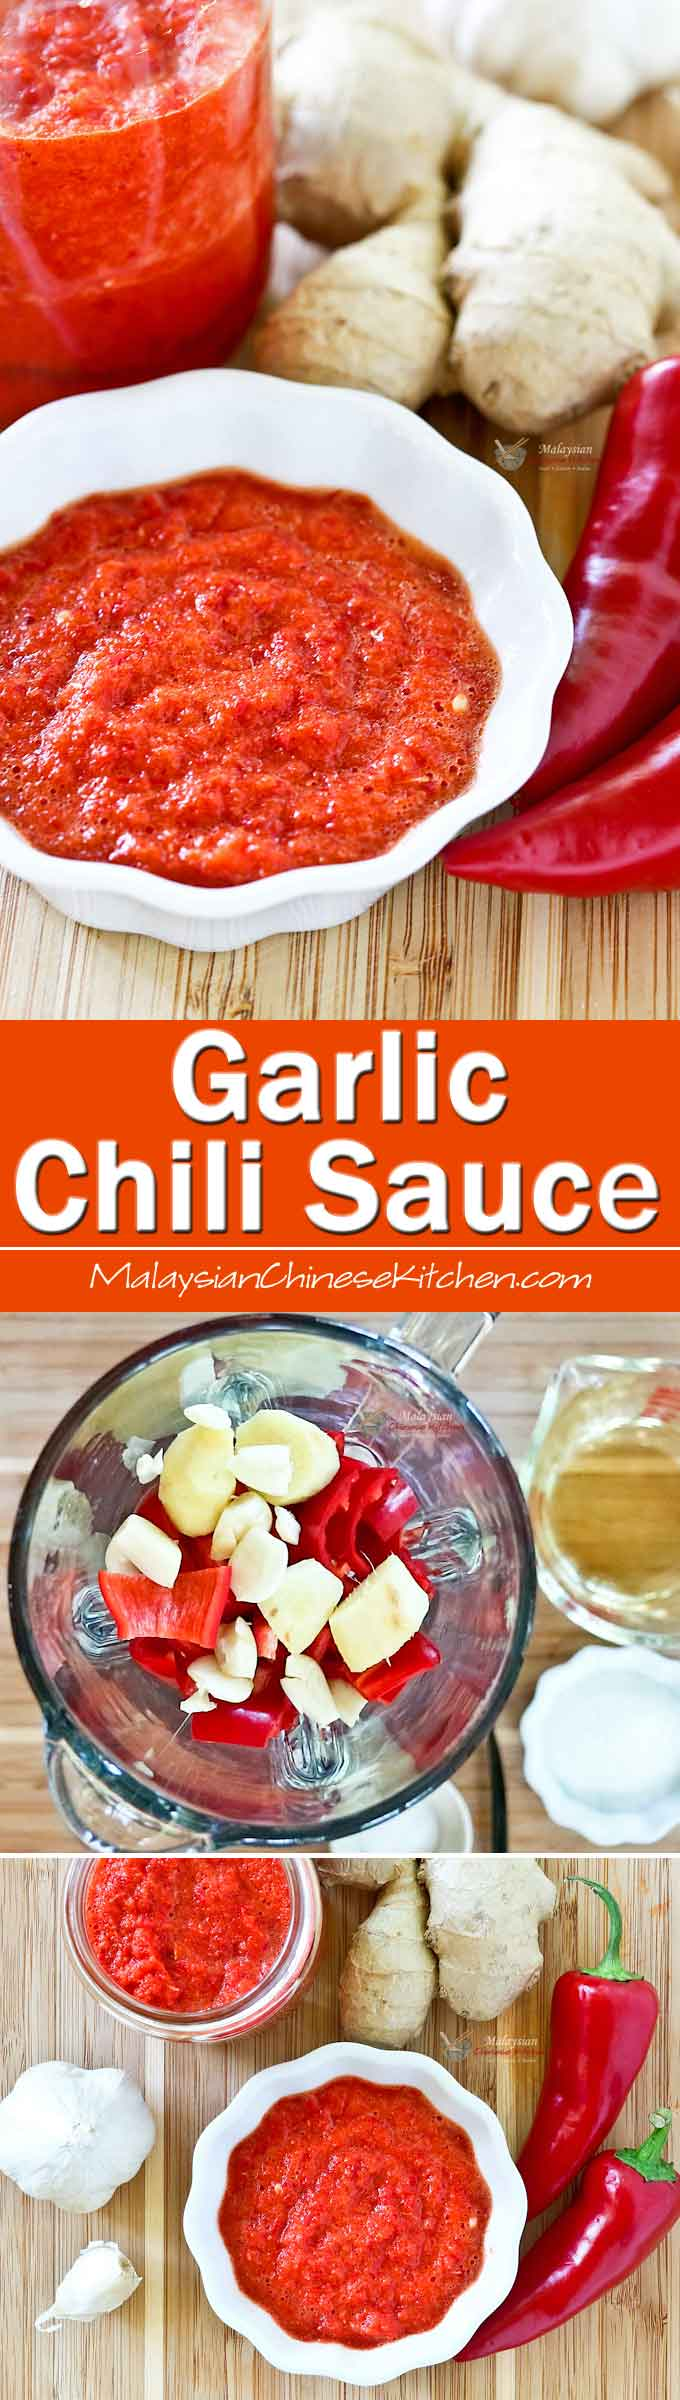 This Simple No Cook Garlic Chili Sauce Is A Tasty Condiment To Have On Hand